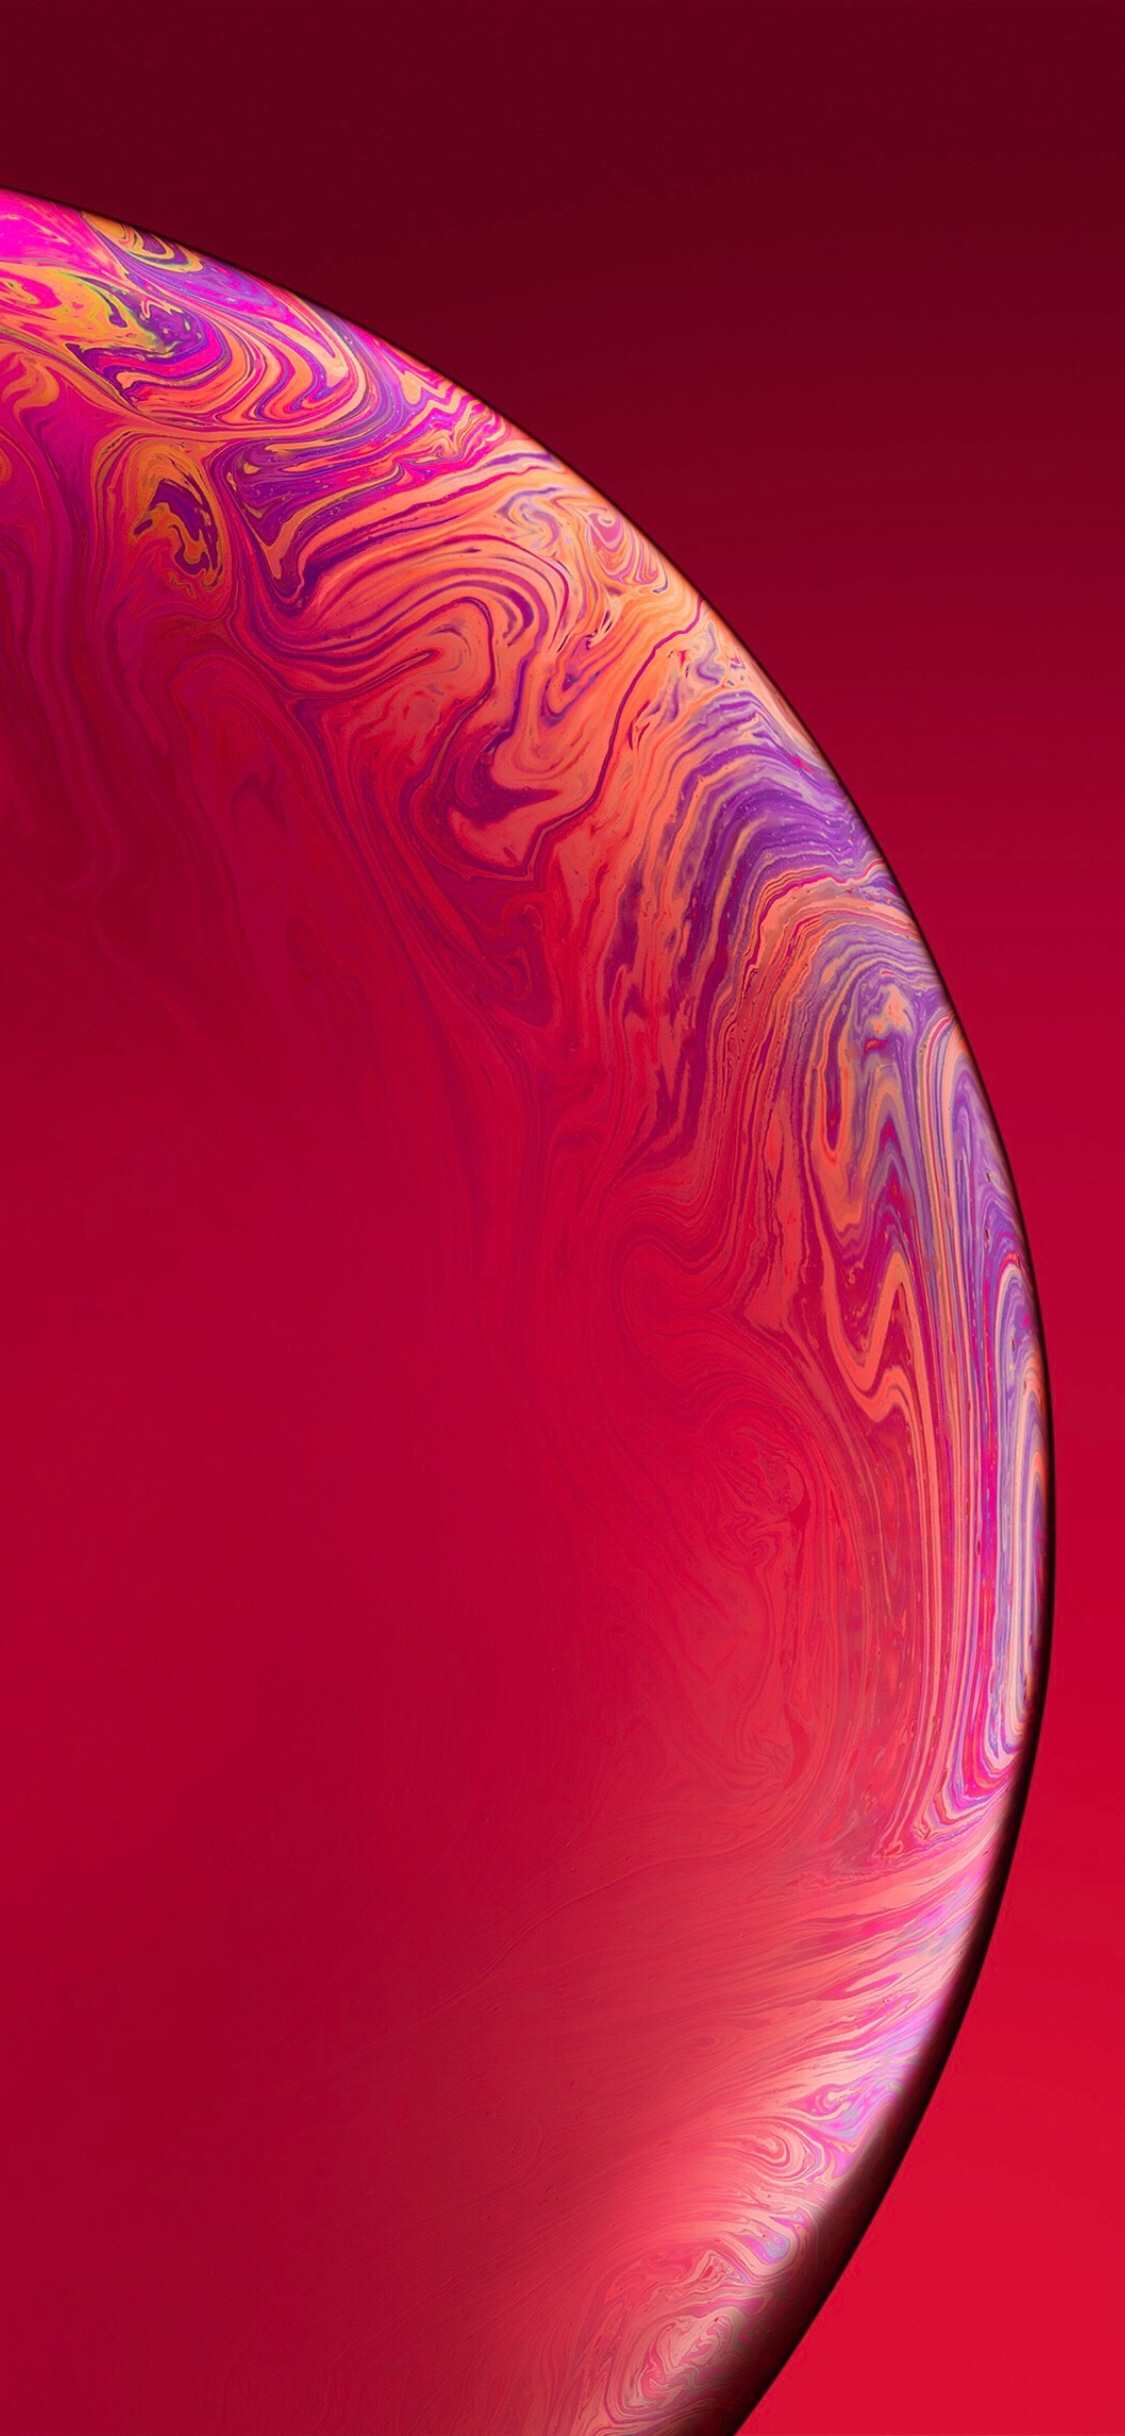 iPhone XR Red Bubble Wallpaper